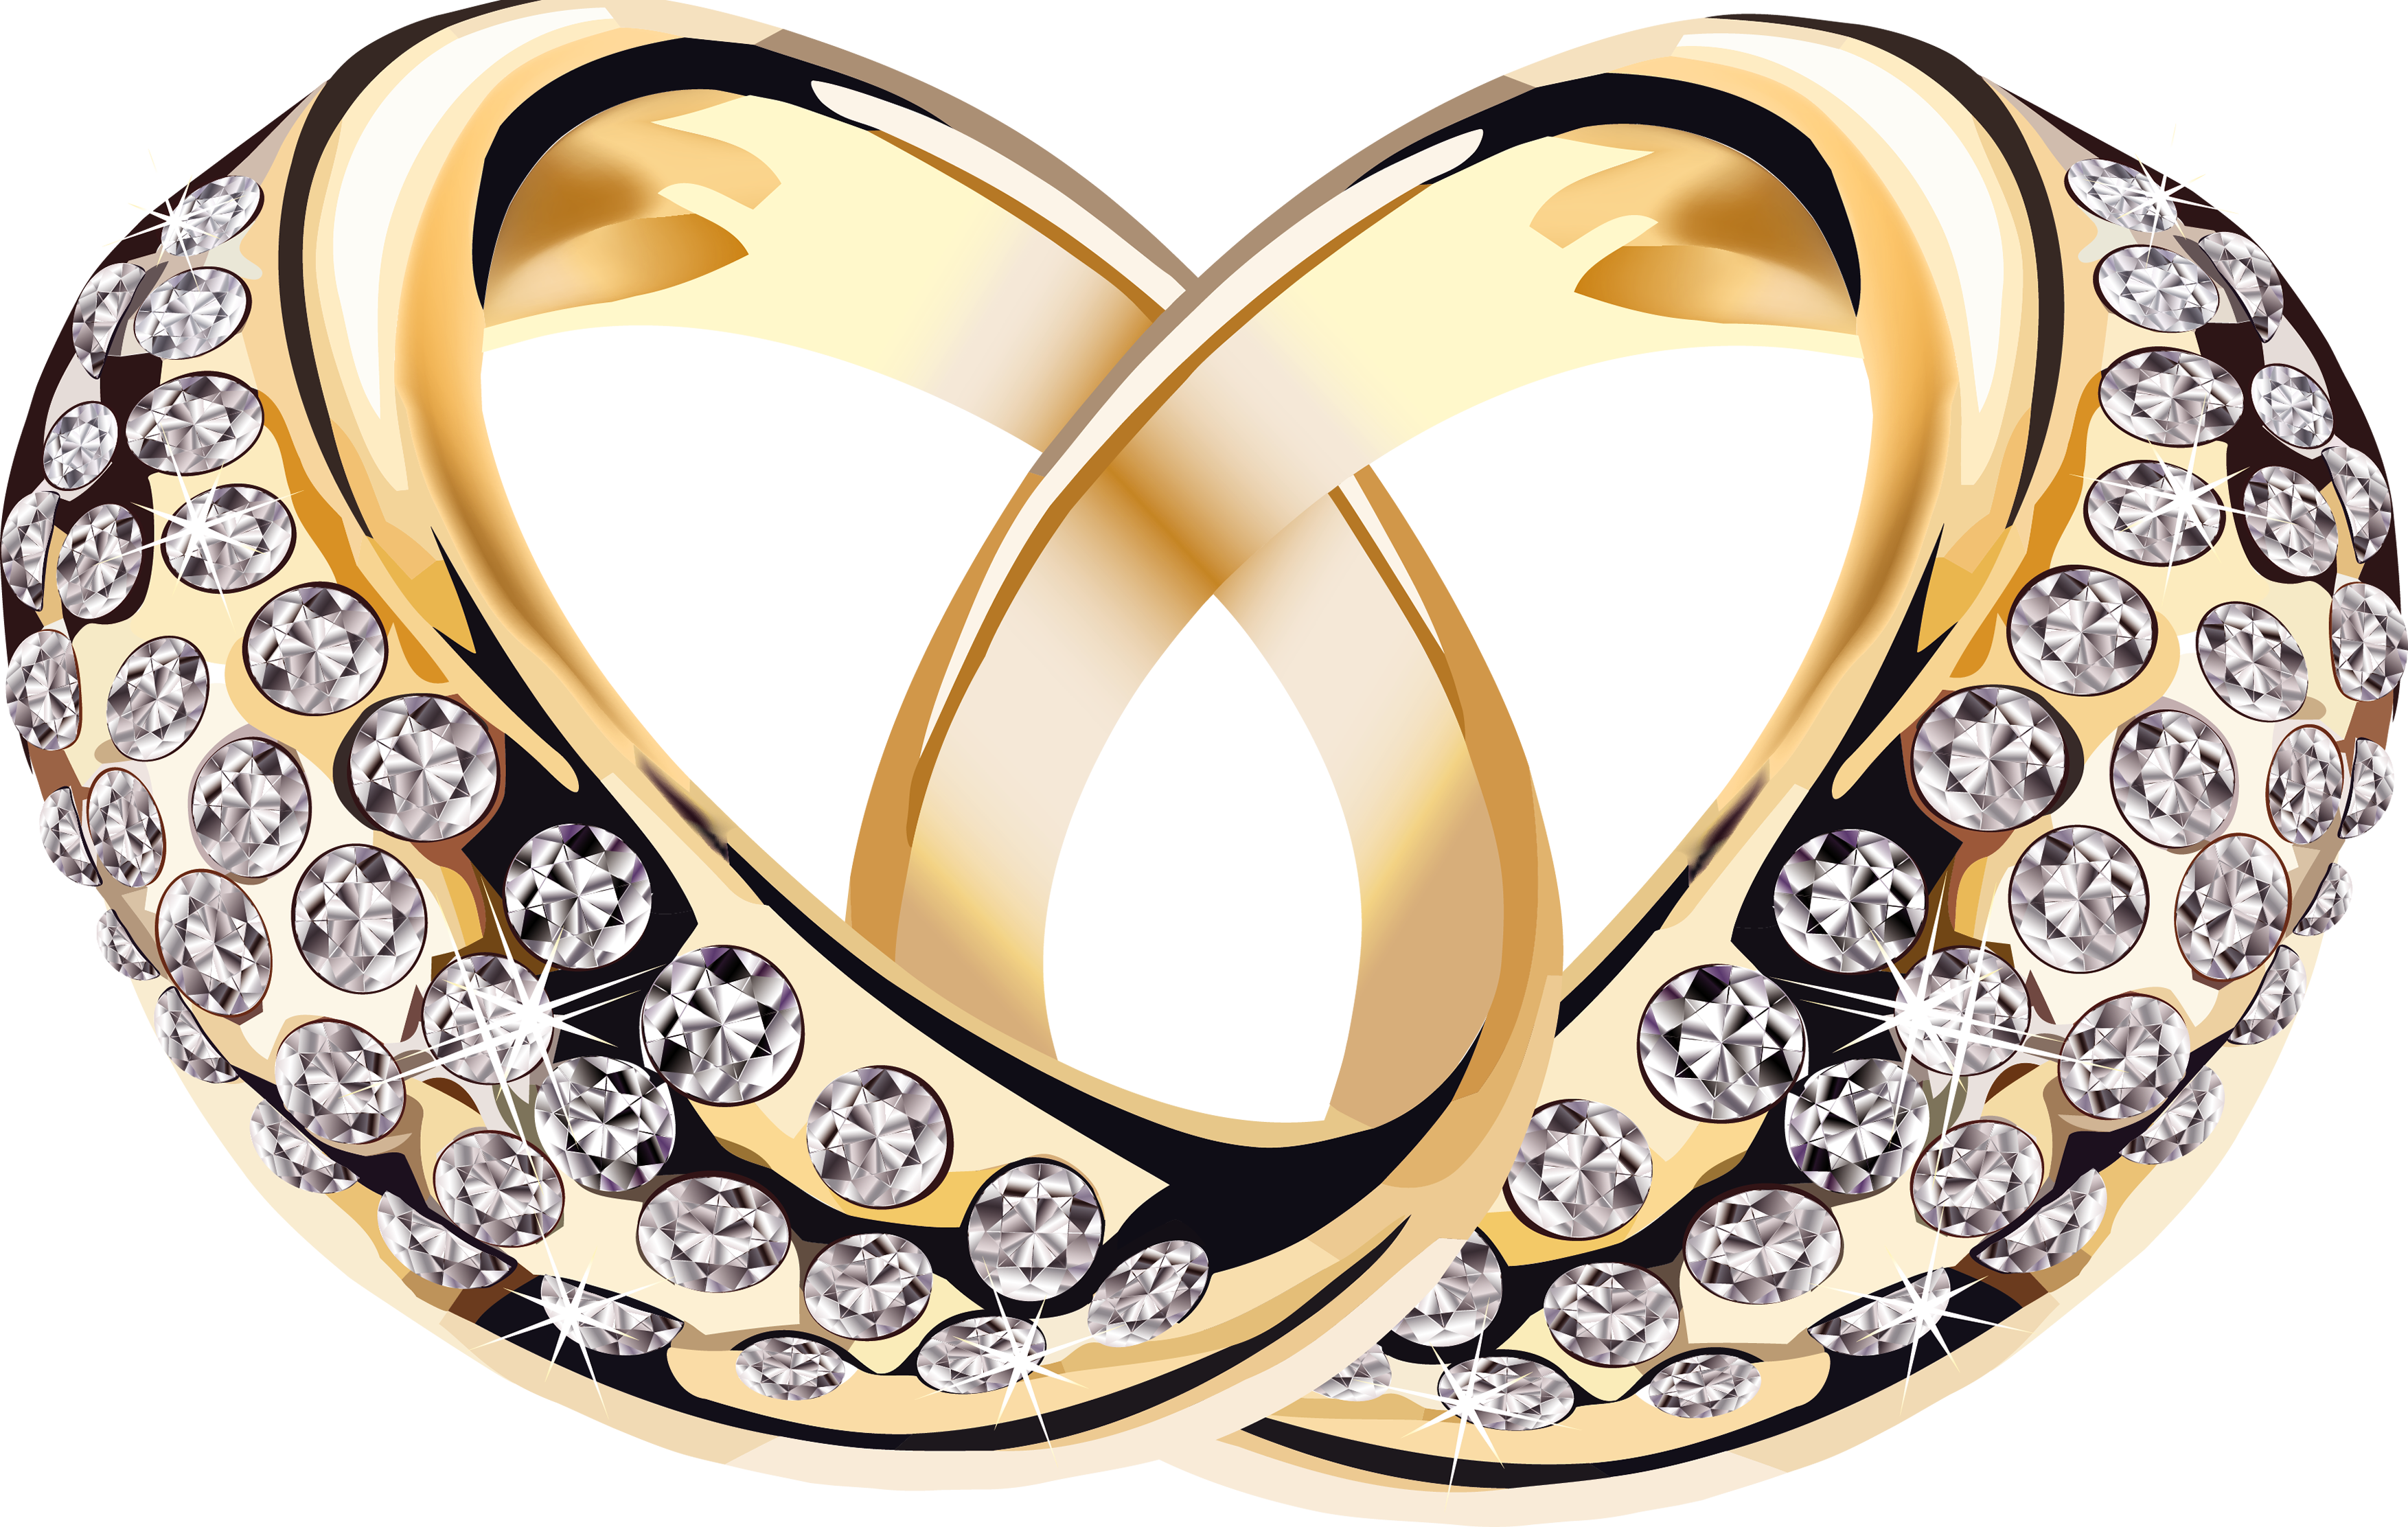 Jewelry Images PNG HD - 129388